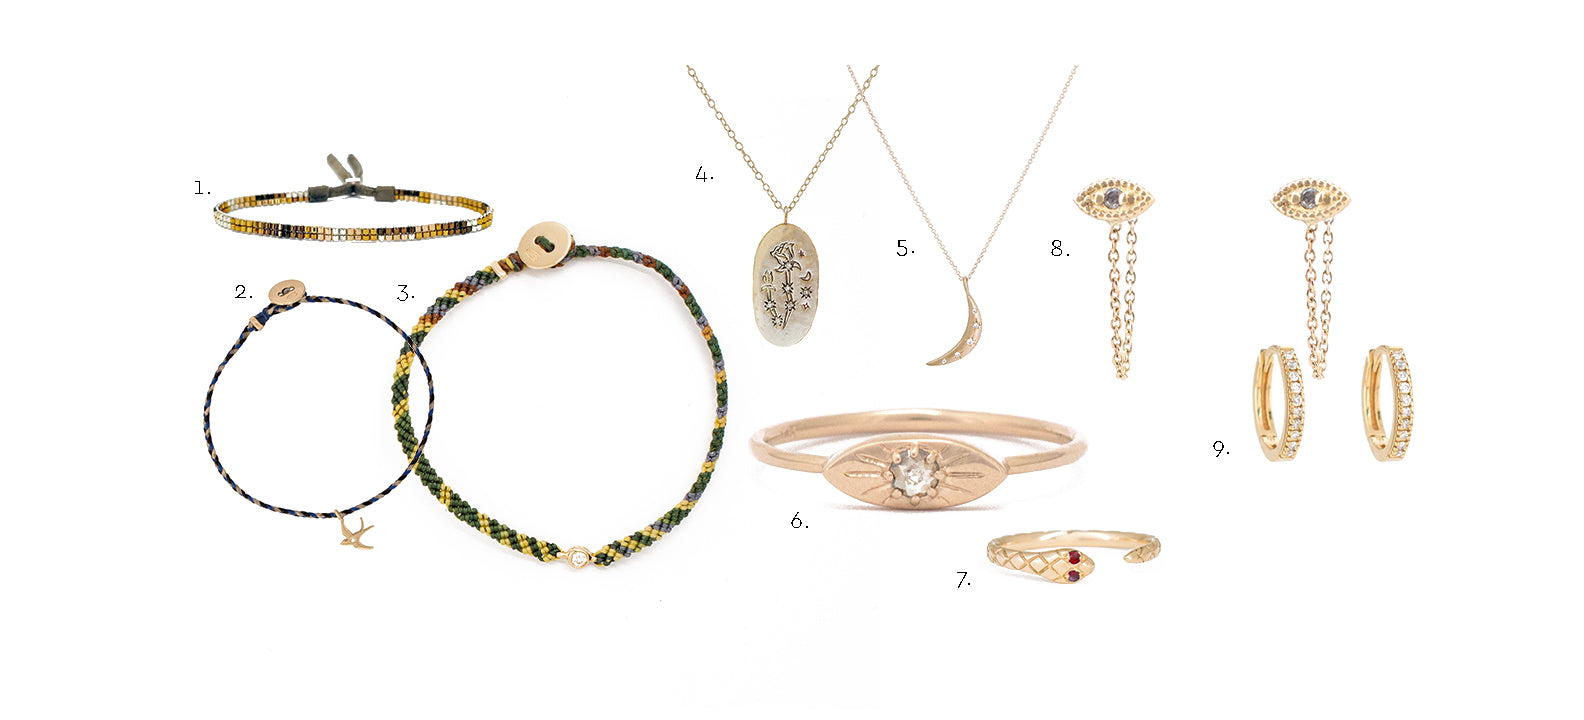 jewels to pack on your vacation